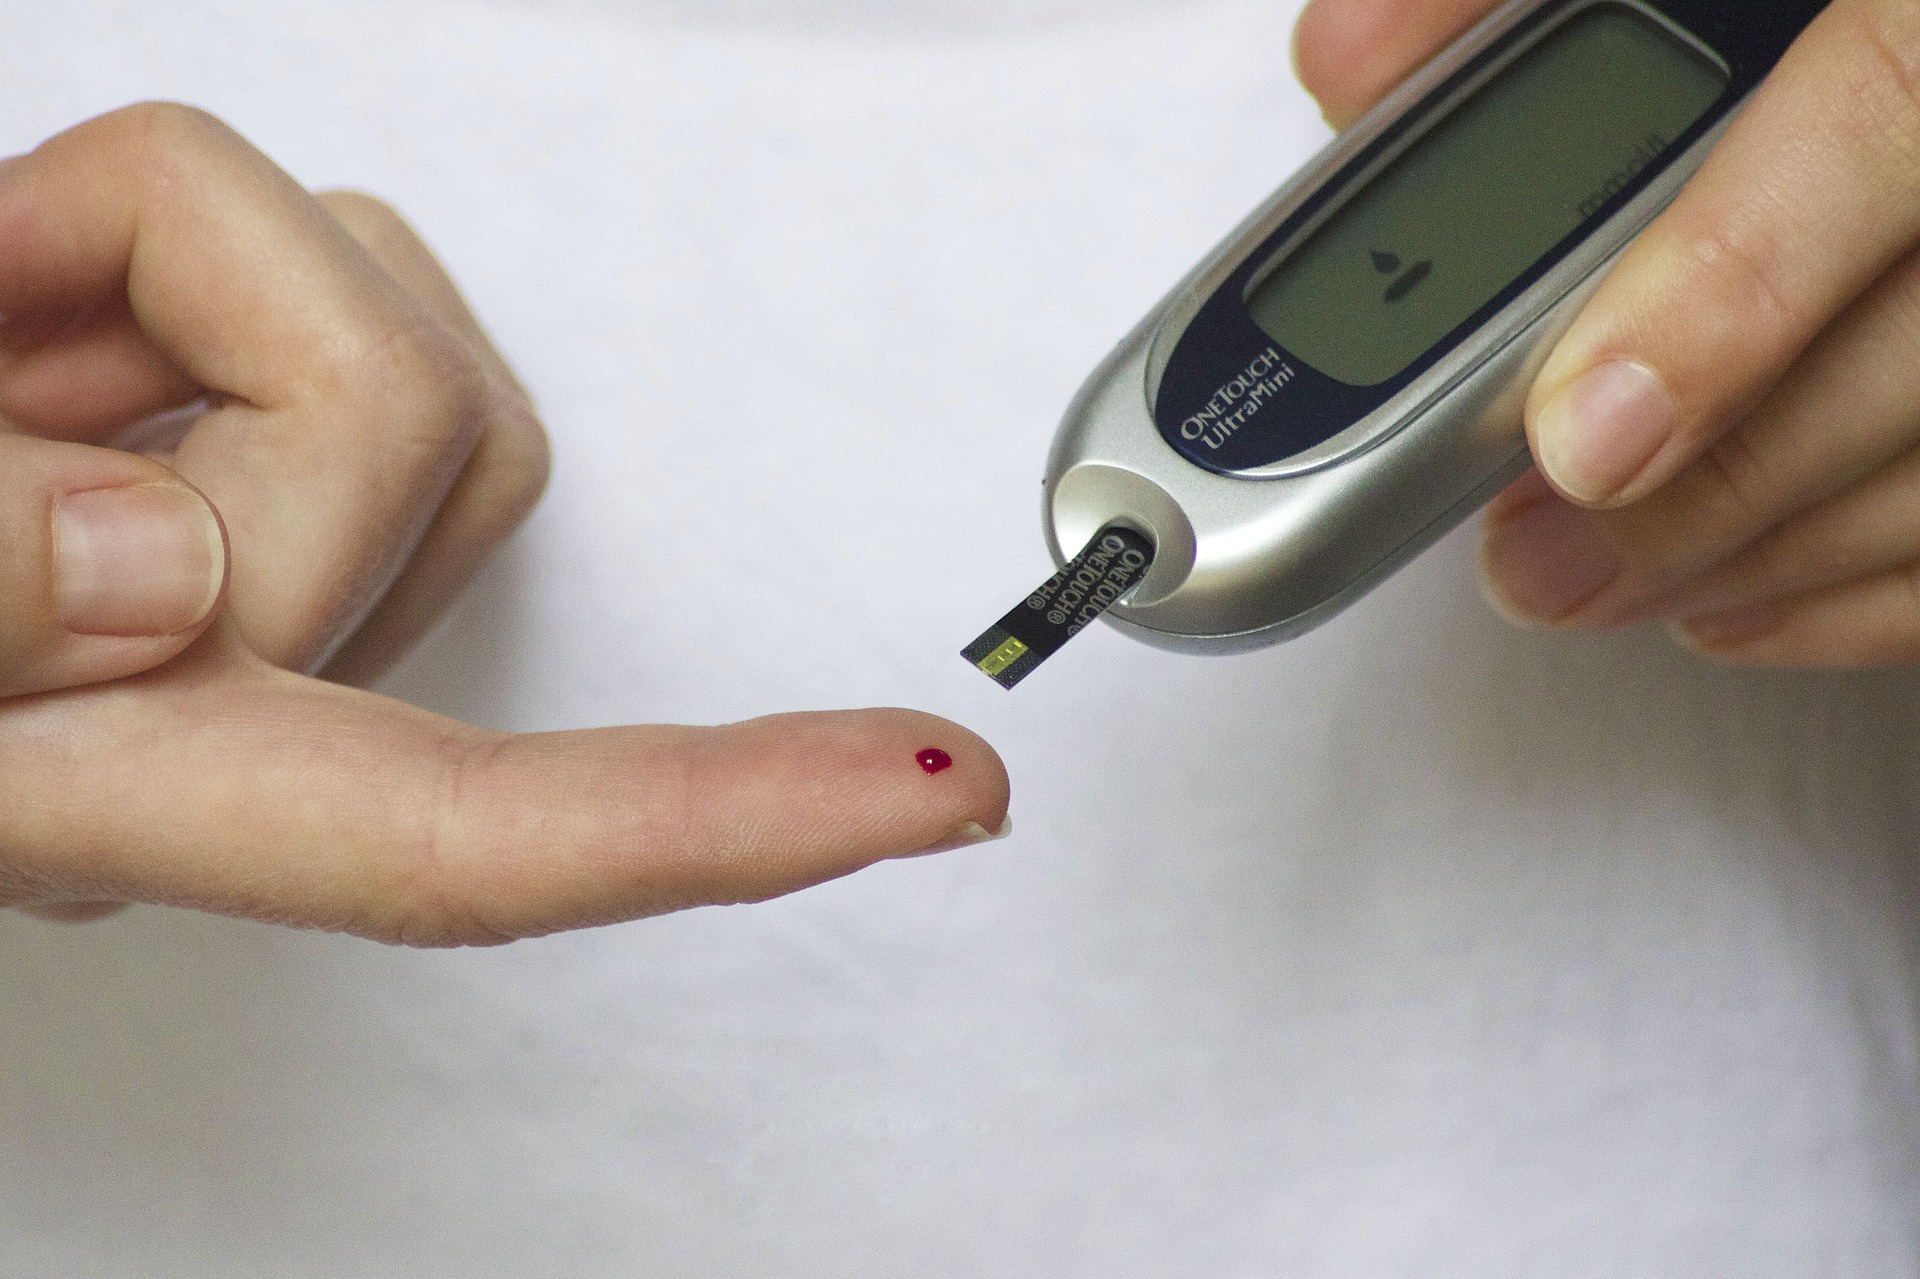 Night shifts plus unhealthy lifestyle may be recipe for diabetes